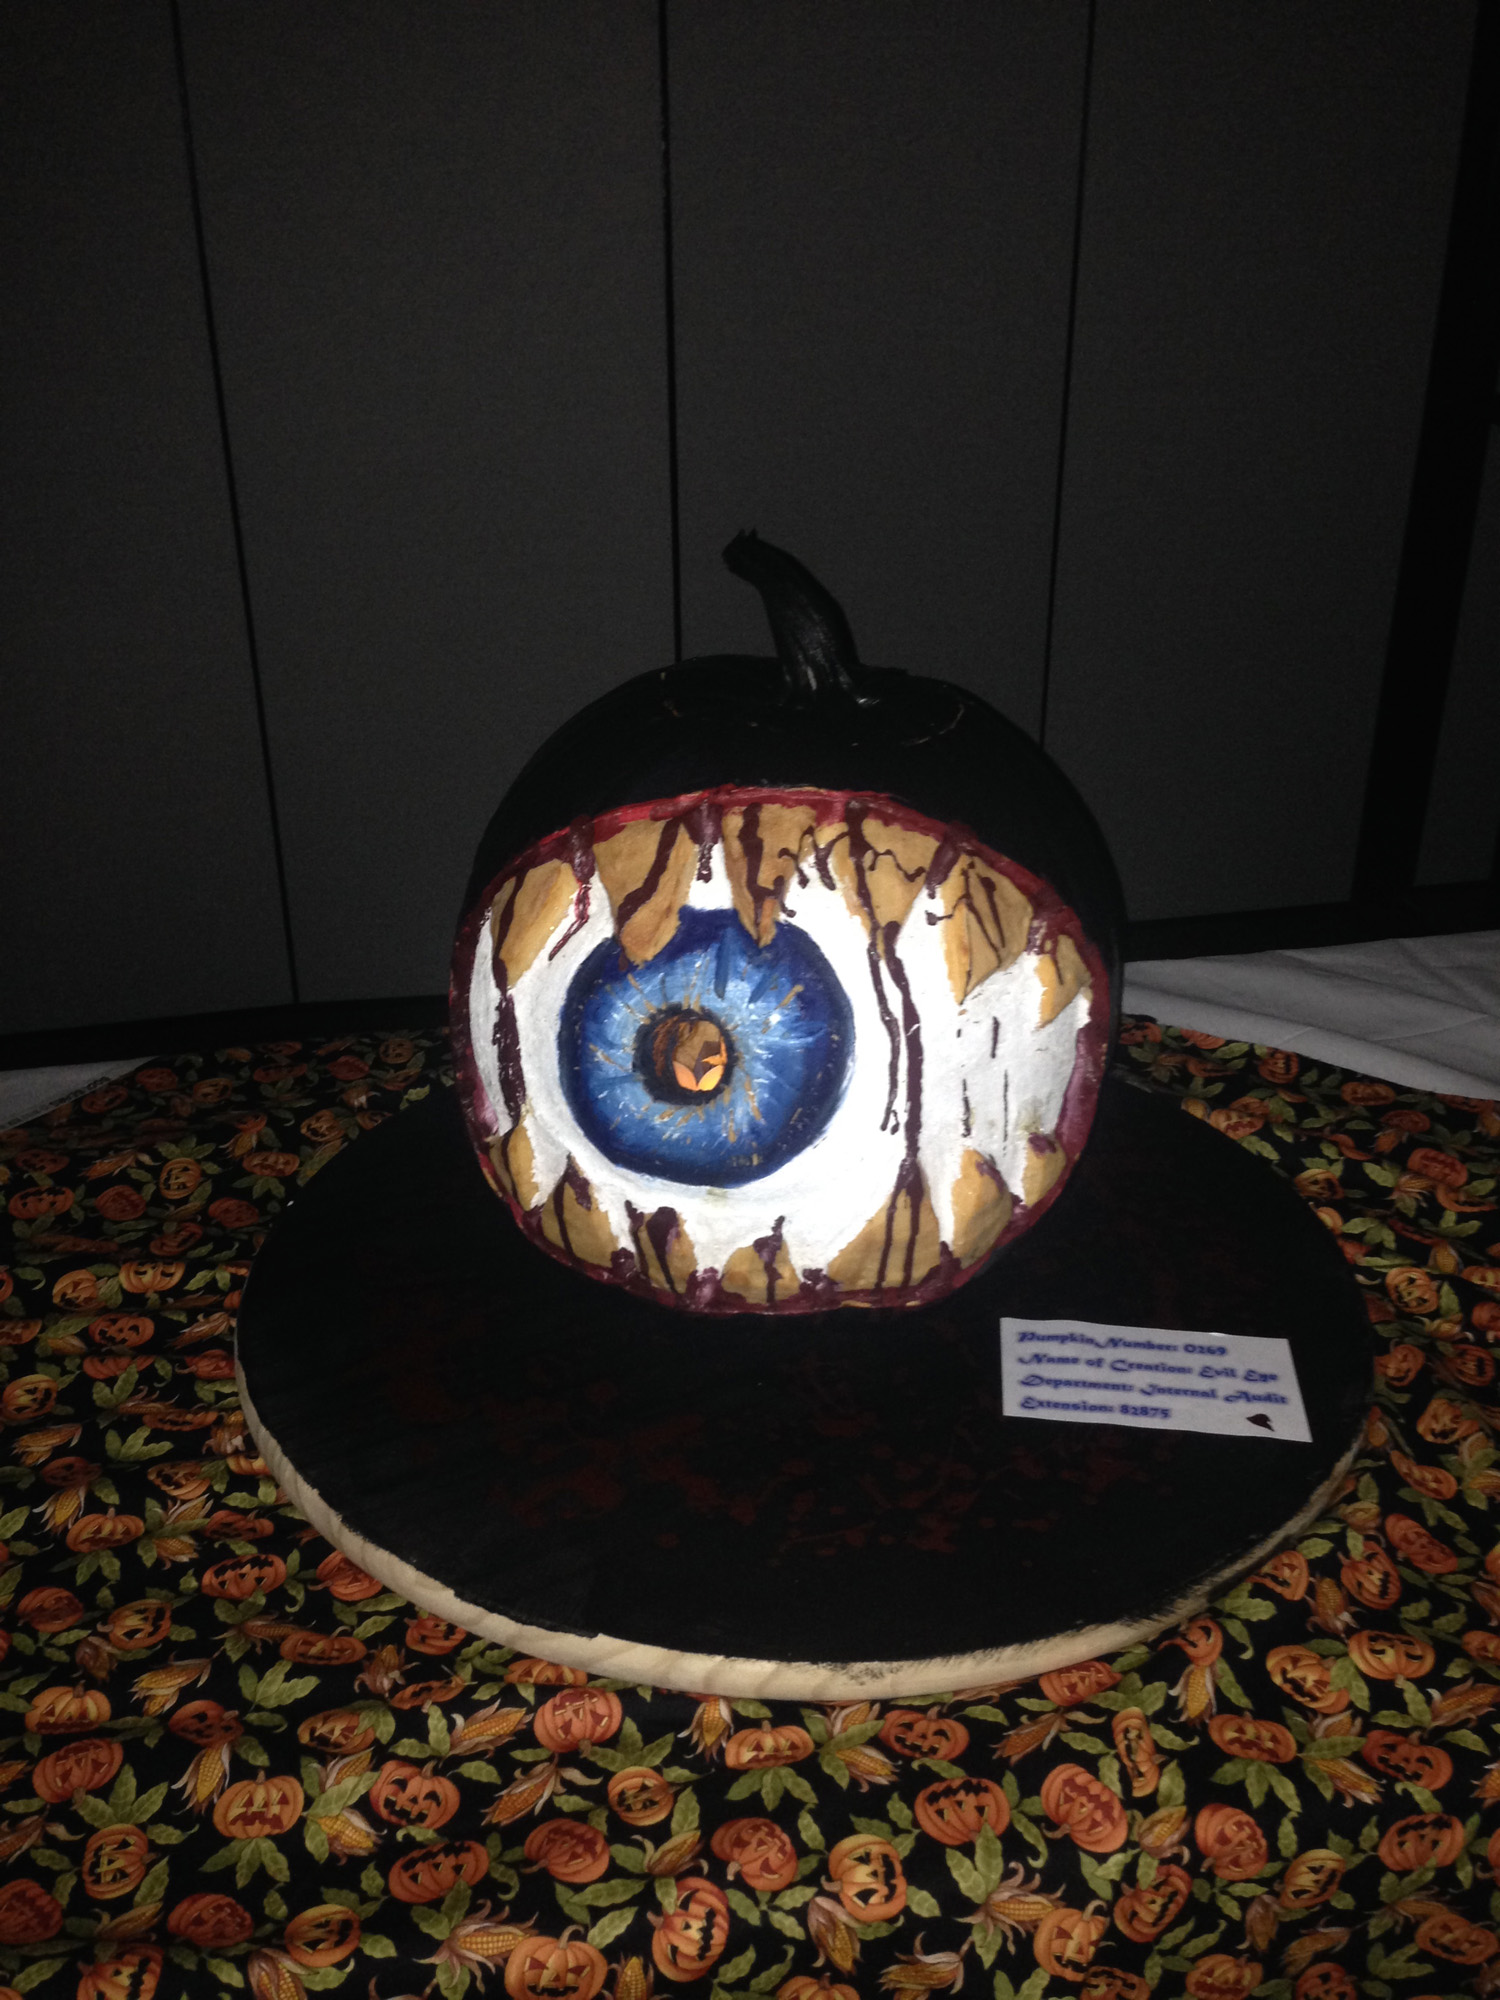 6908 Office Halloween pumpkin carving eyeball